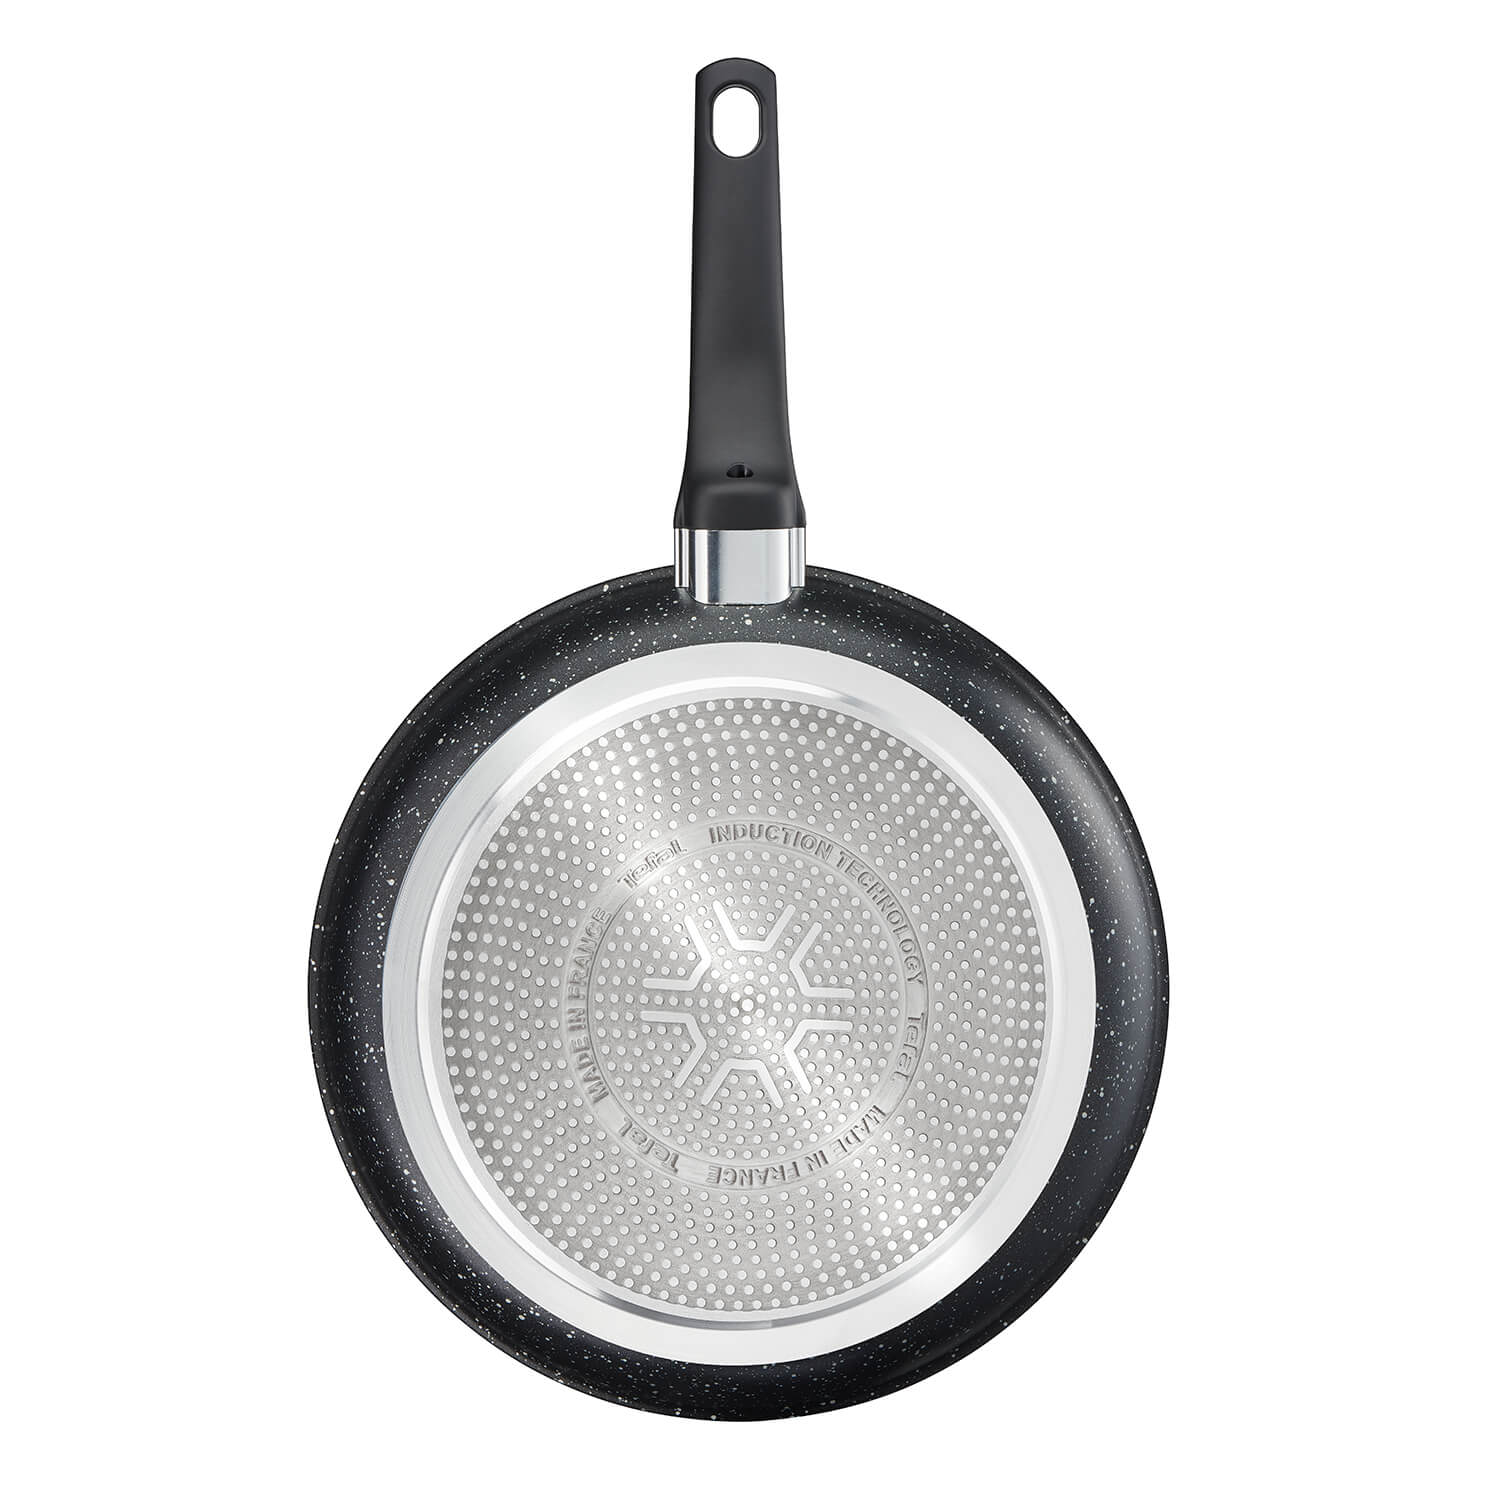 Tefal Everest Frying Pan - 28cm